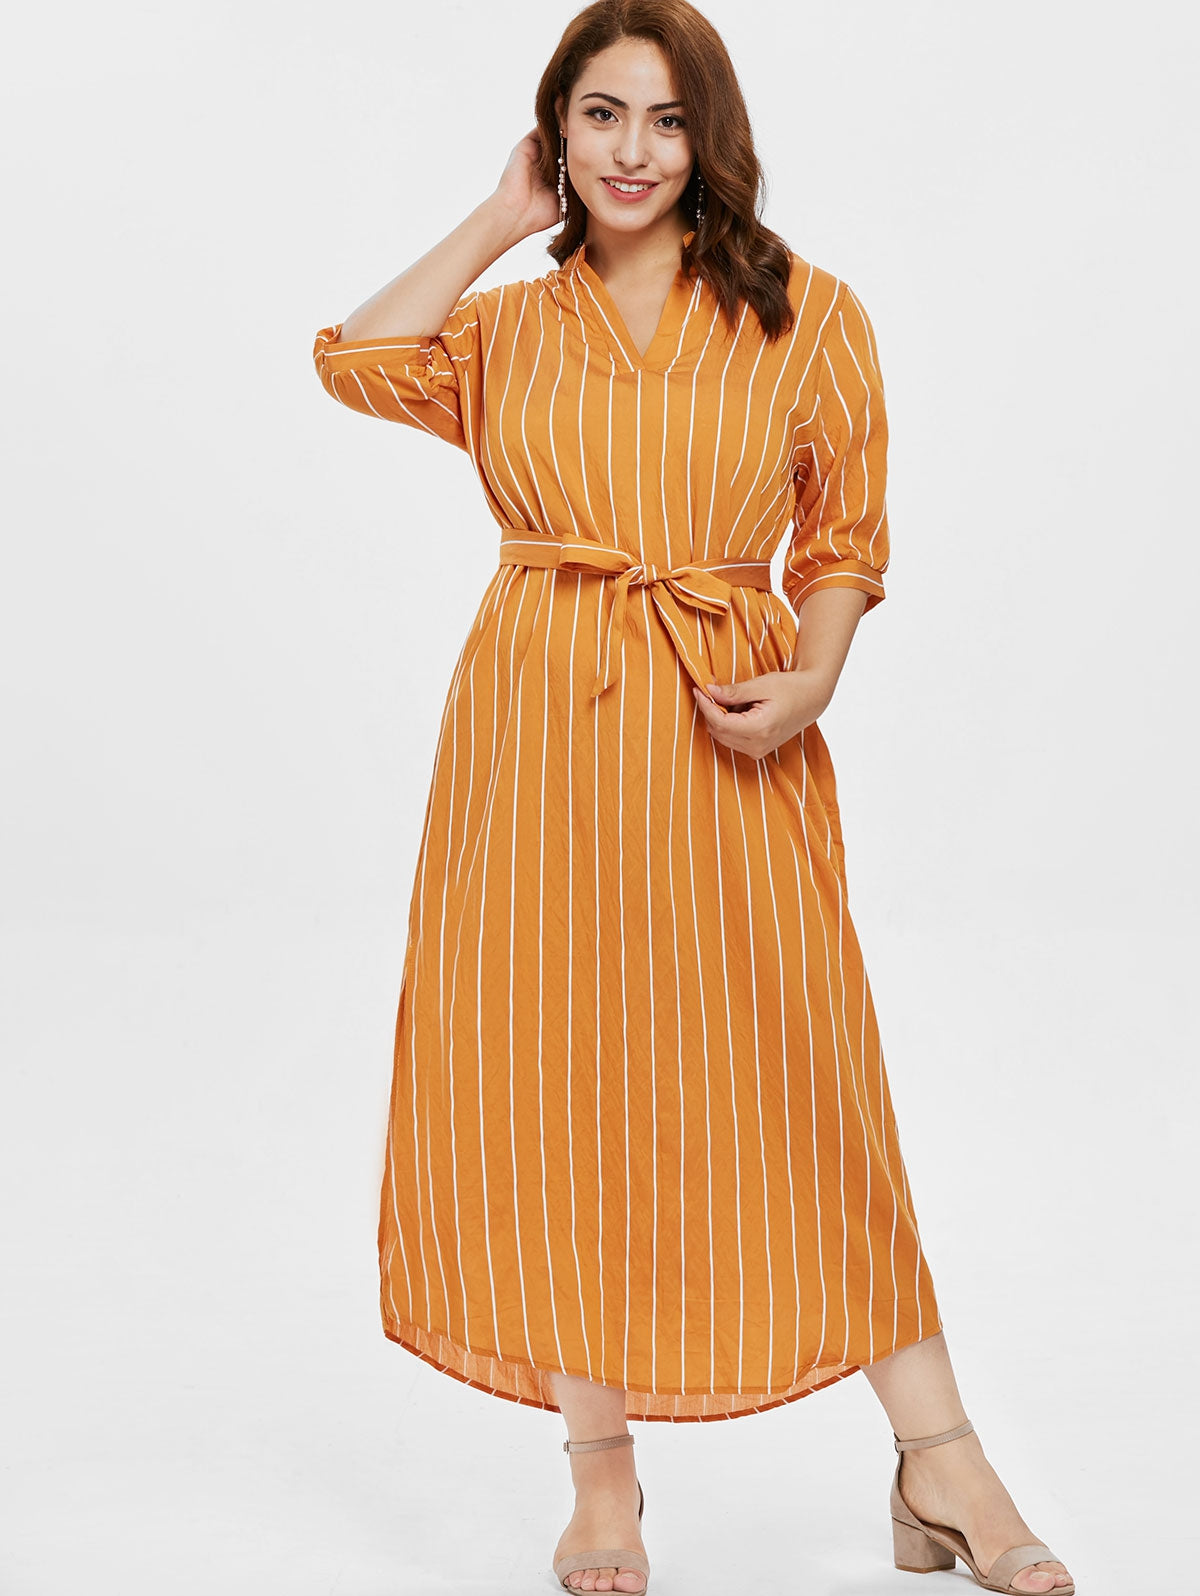 Plus Size Half Sleeve Striped Ankle Length Dress - That Swag Tho